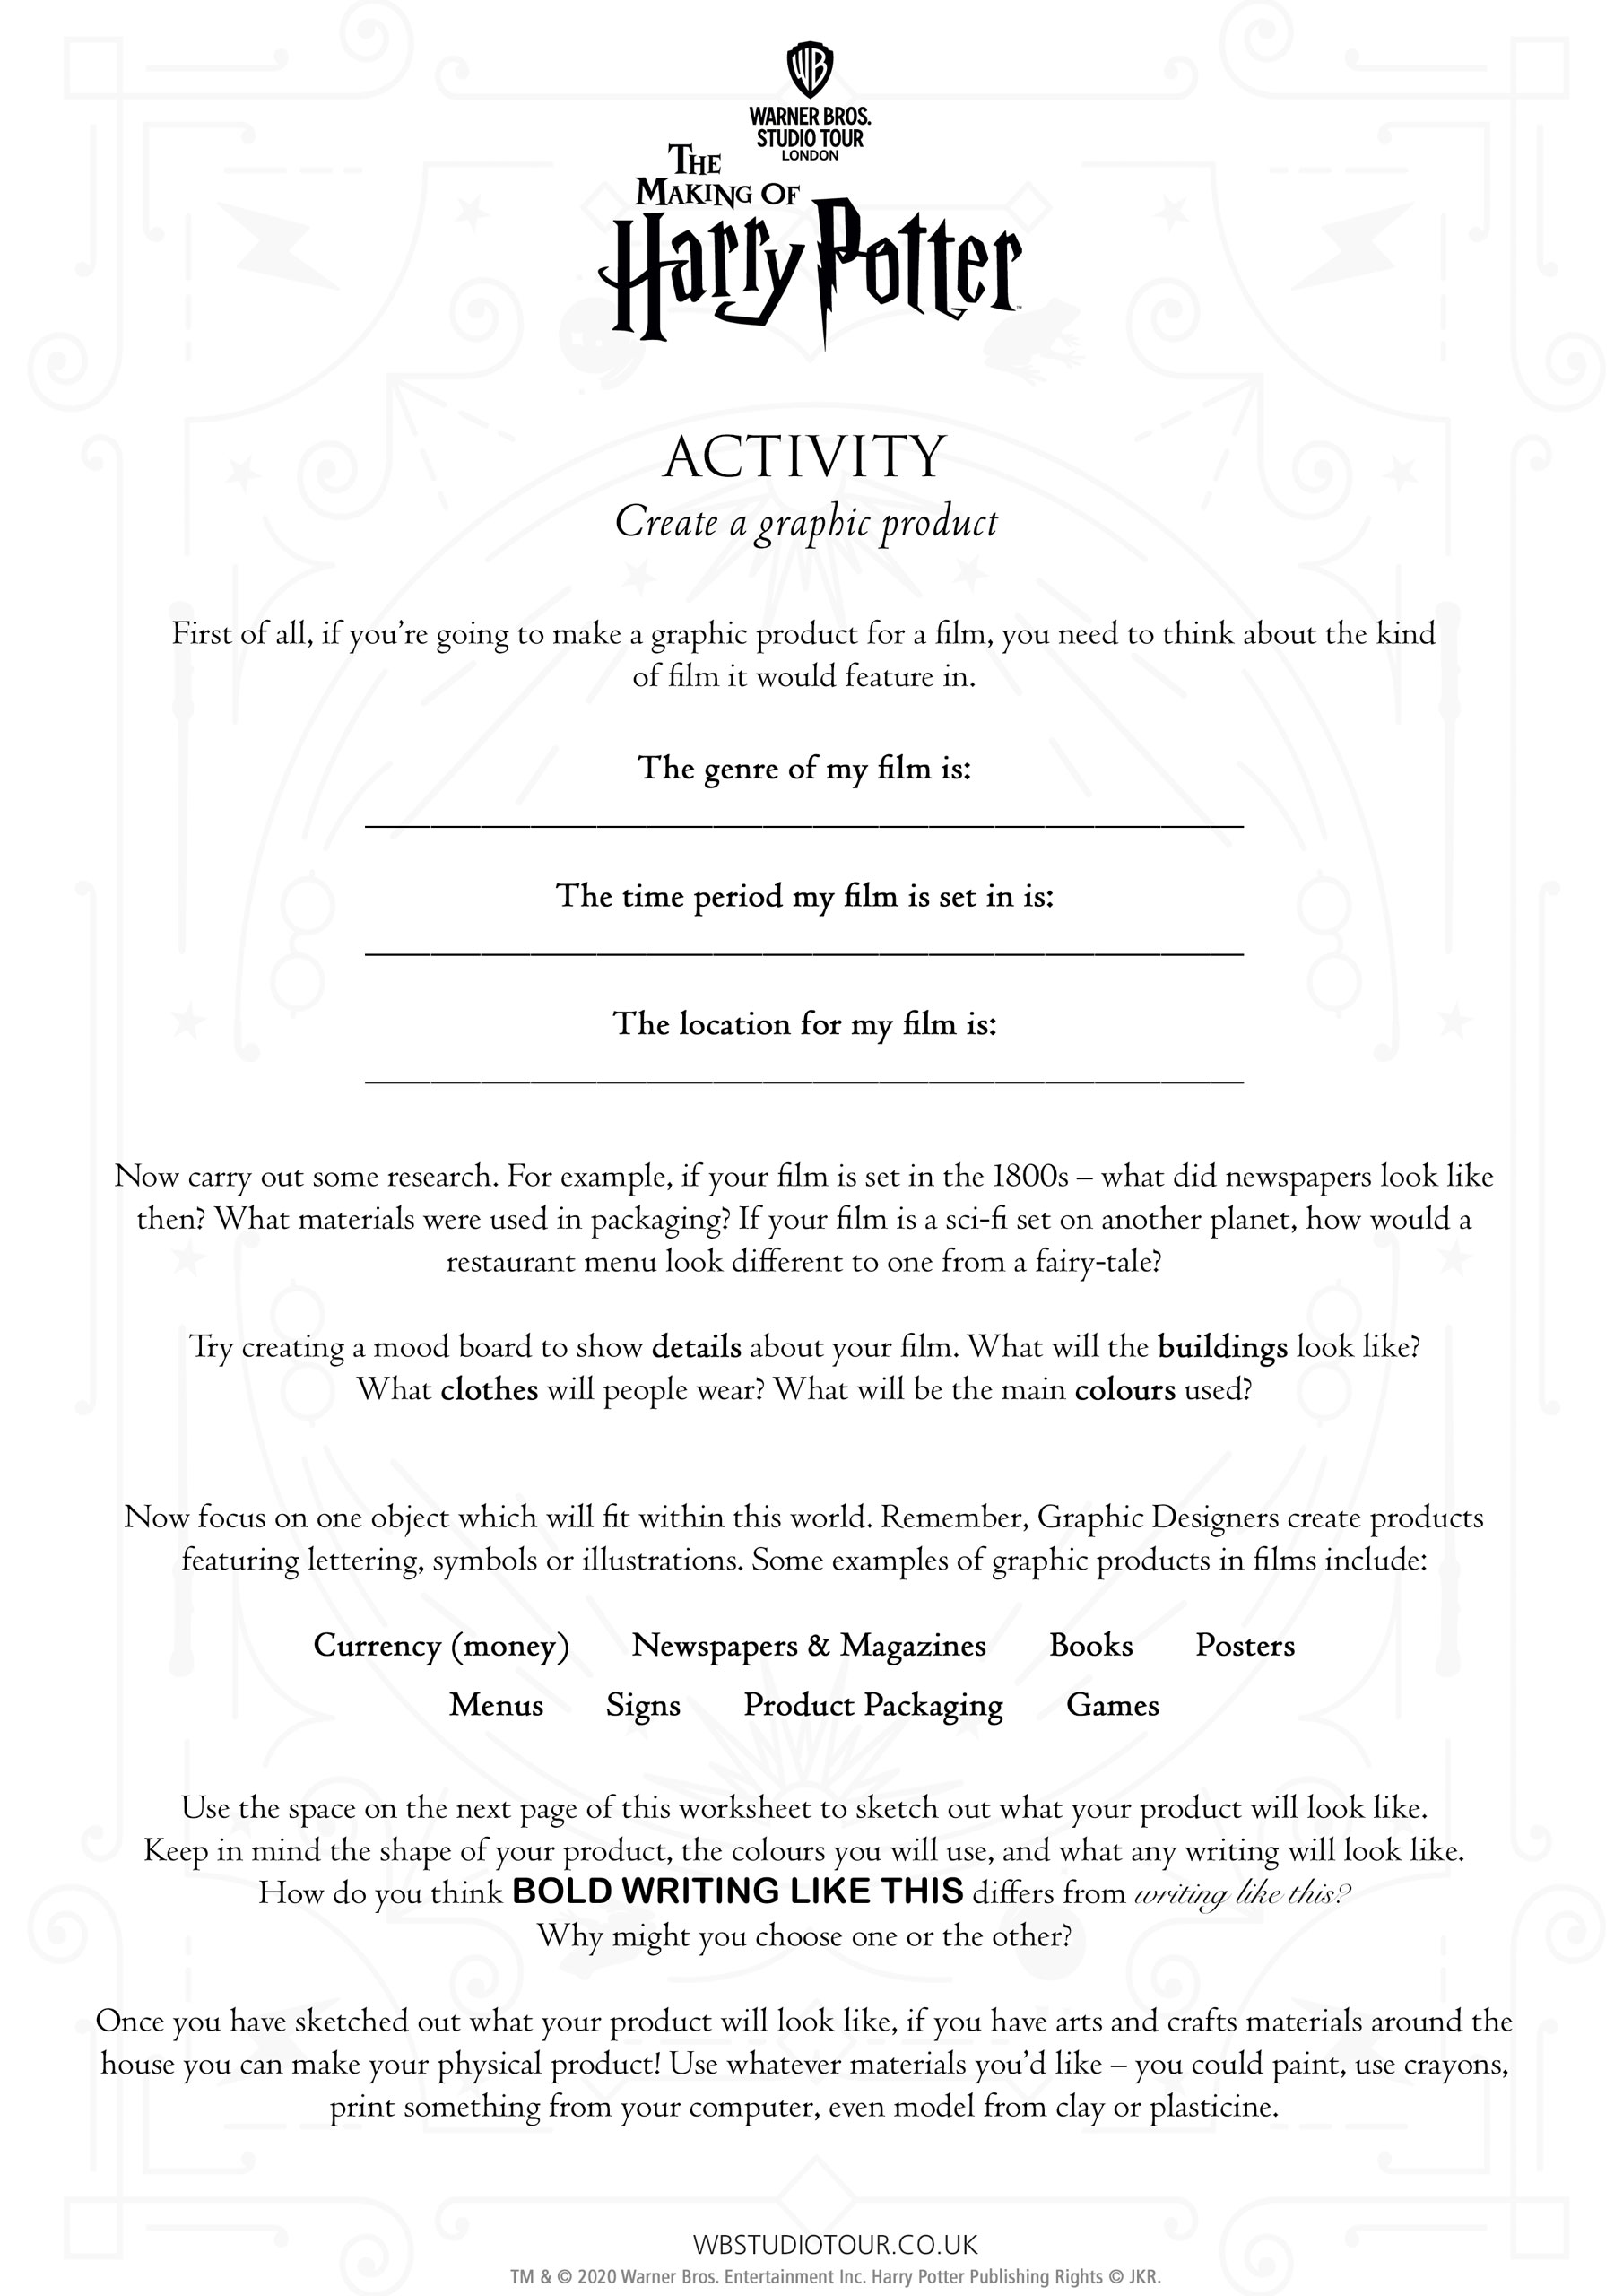 Graphic Design activity worksheets page 2 - Studio Tour at Home